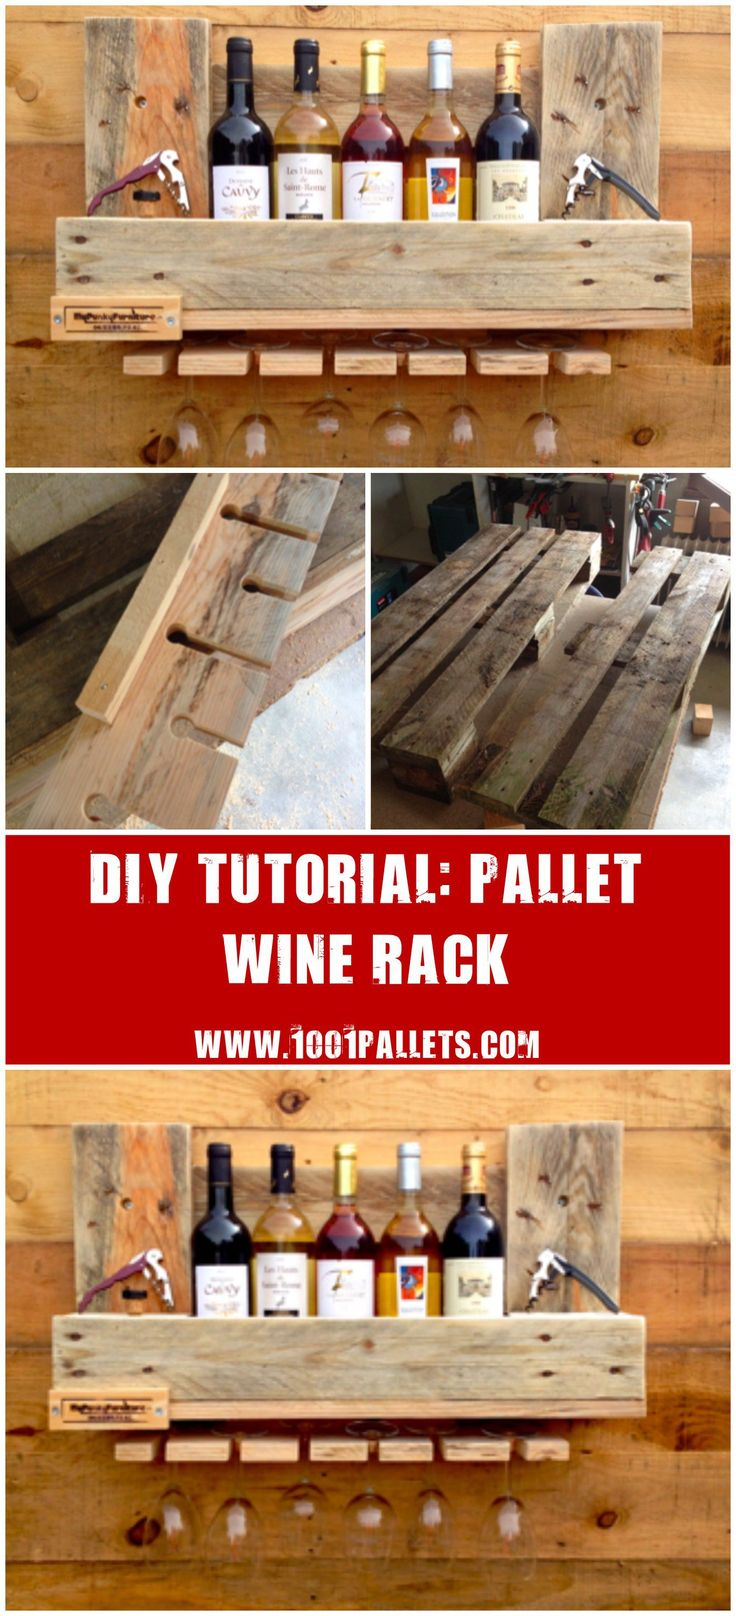 diy pdf tutorial pallet wine rack 1001 pallets free